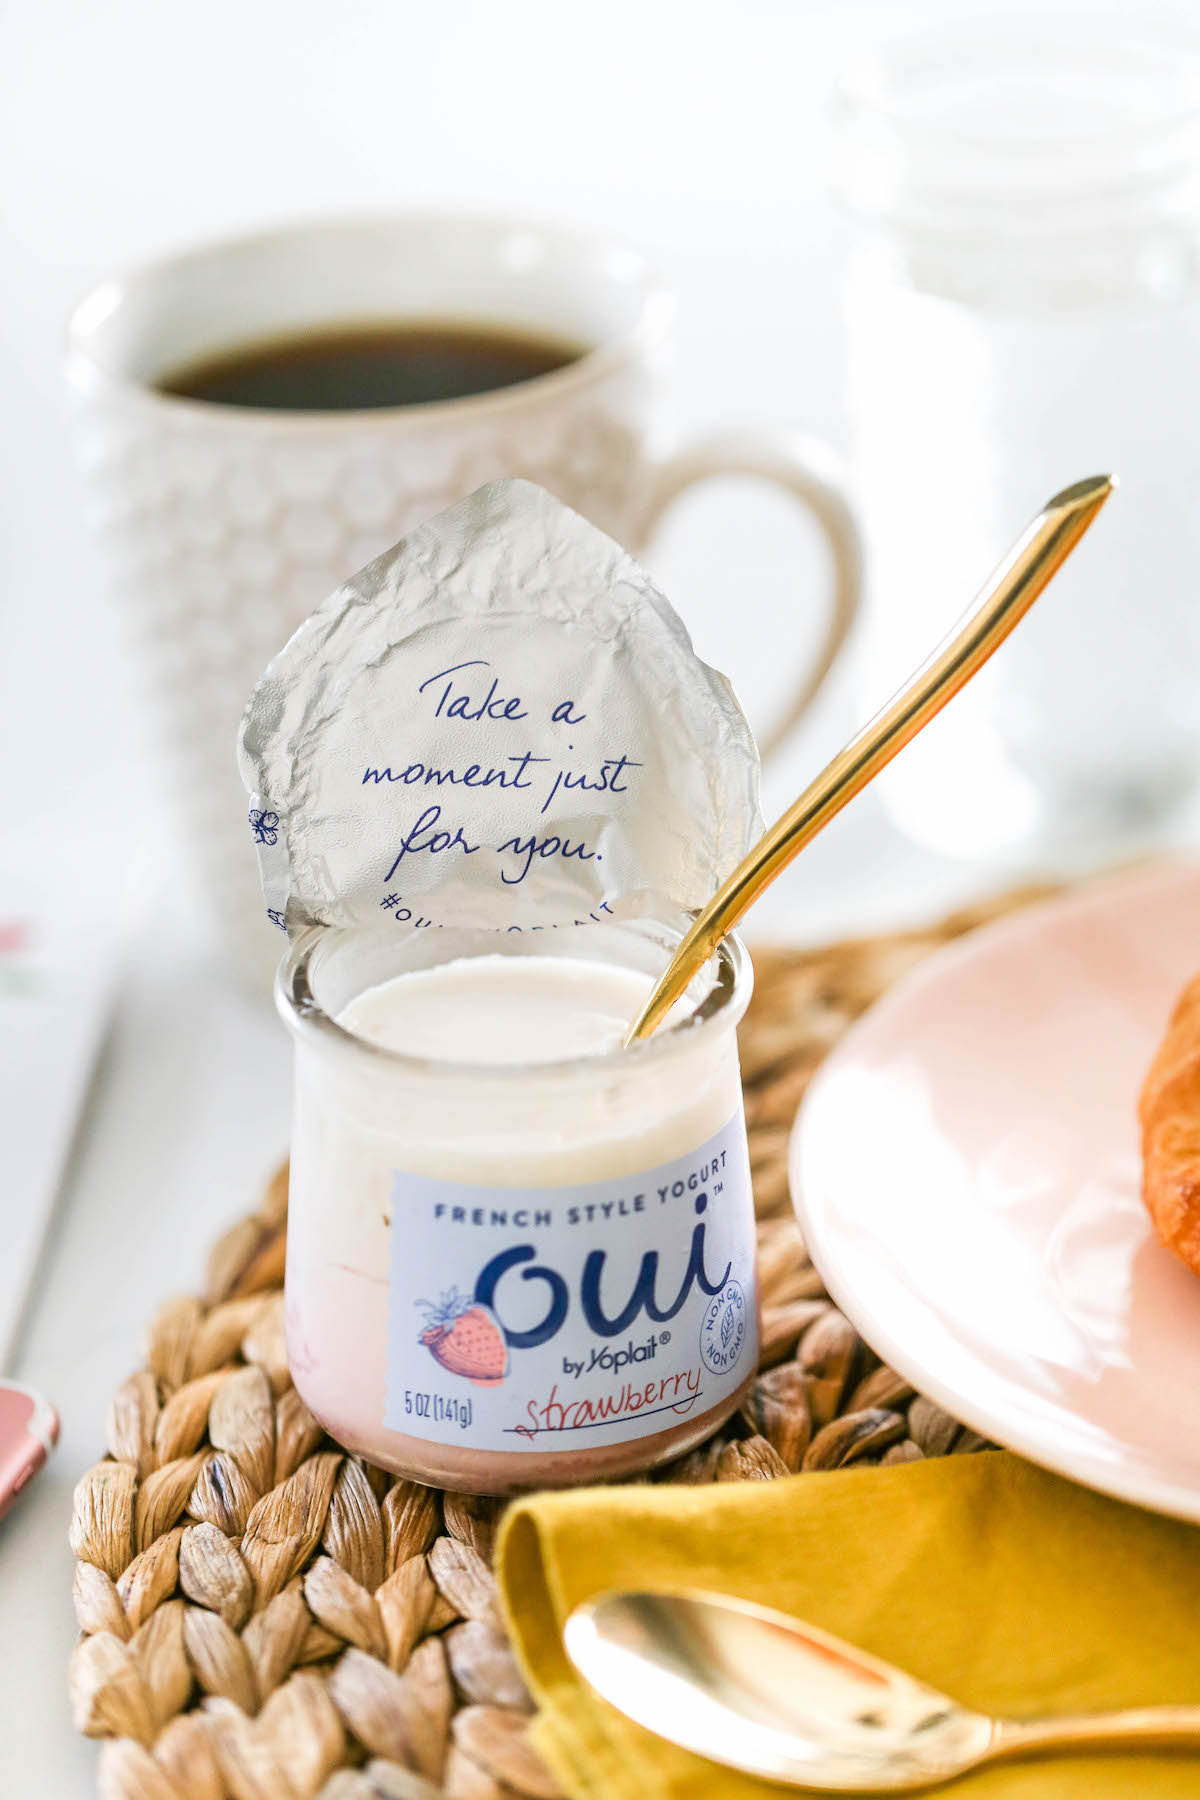 """Open bottle of yogurt. The lid has """"Take a moment just for yourself"""" written on it."""